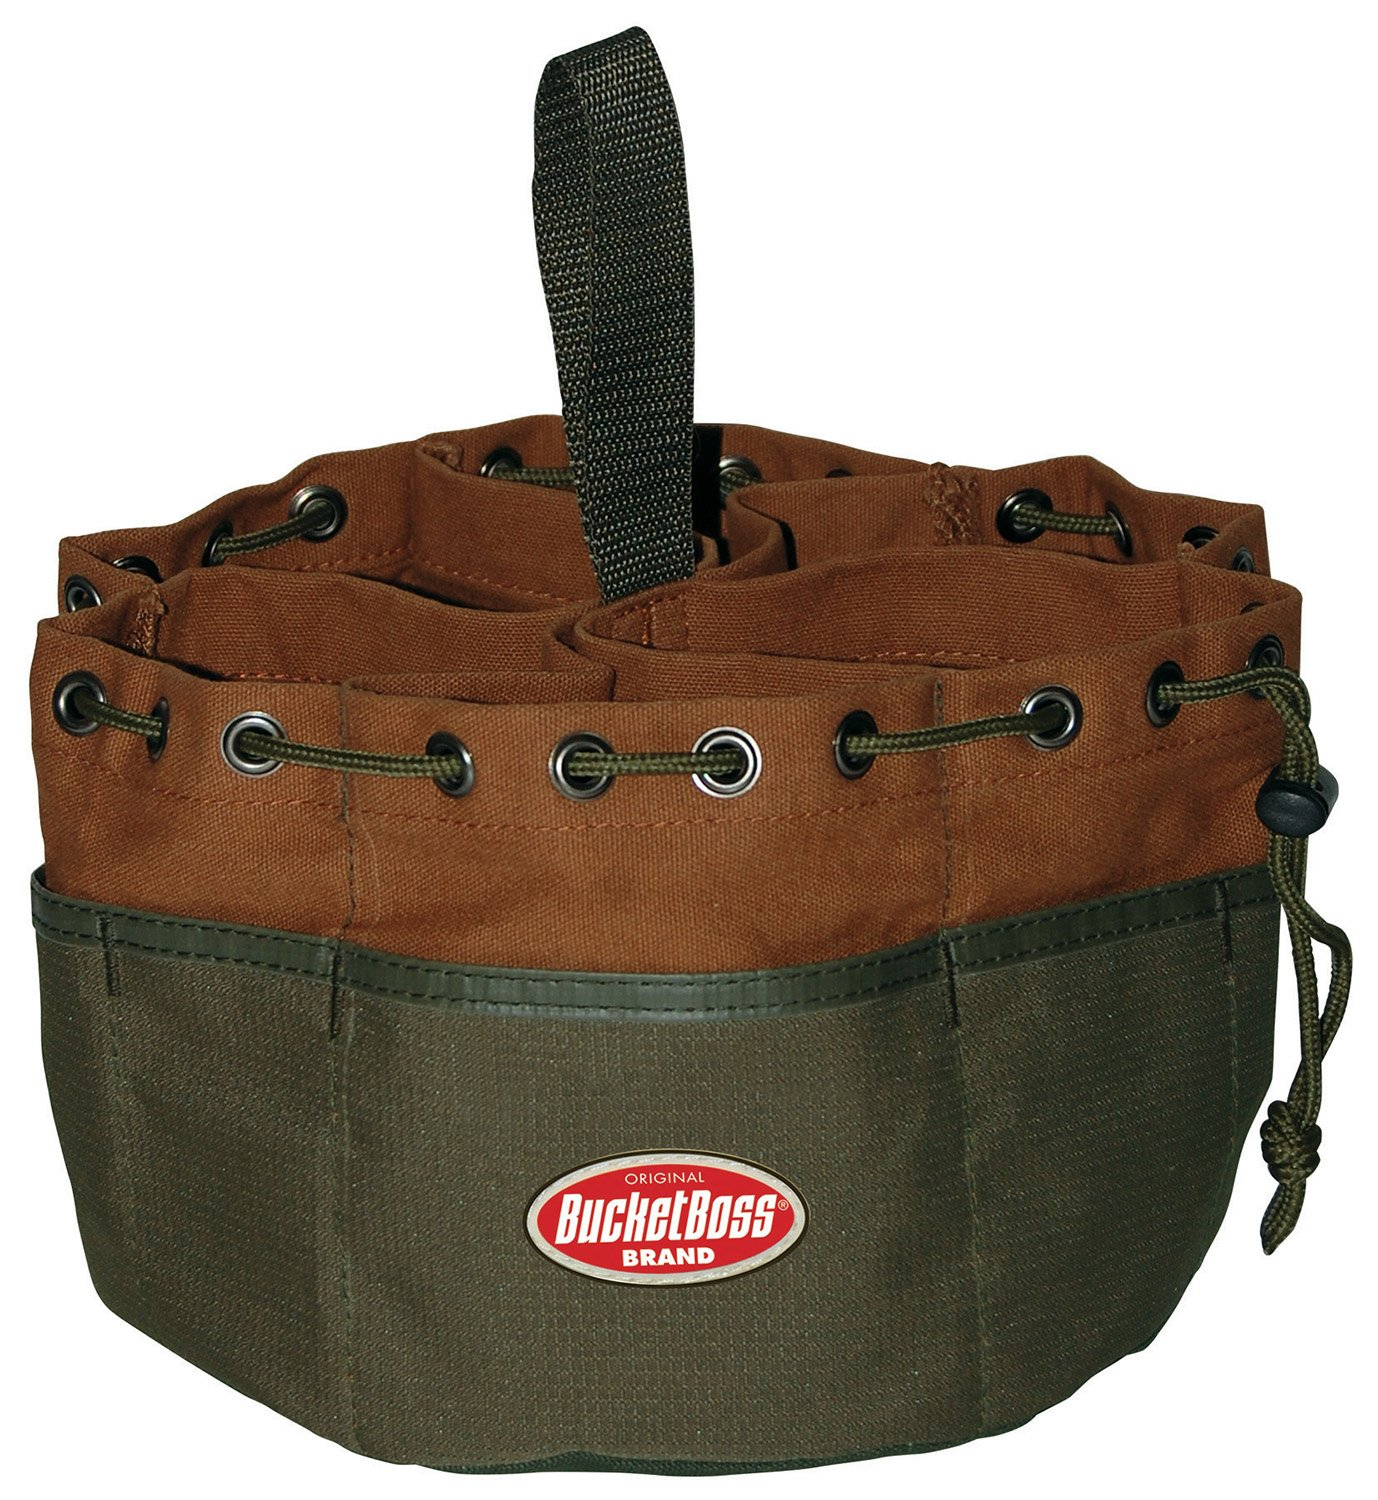 Bucket Boss 25001 Parachute Bag